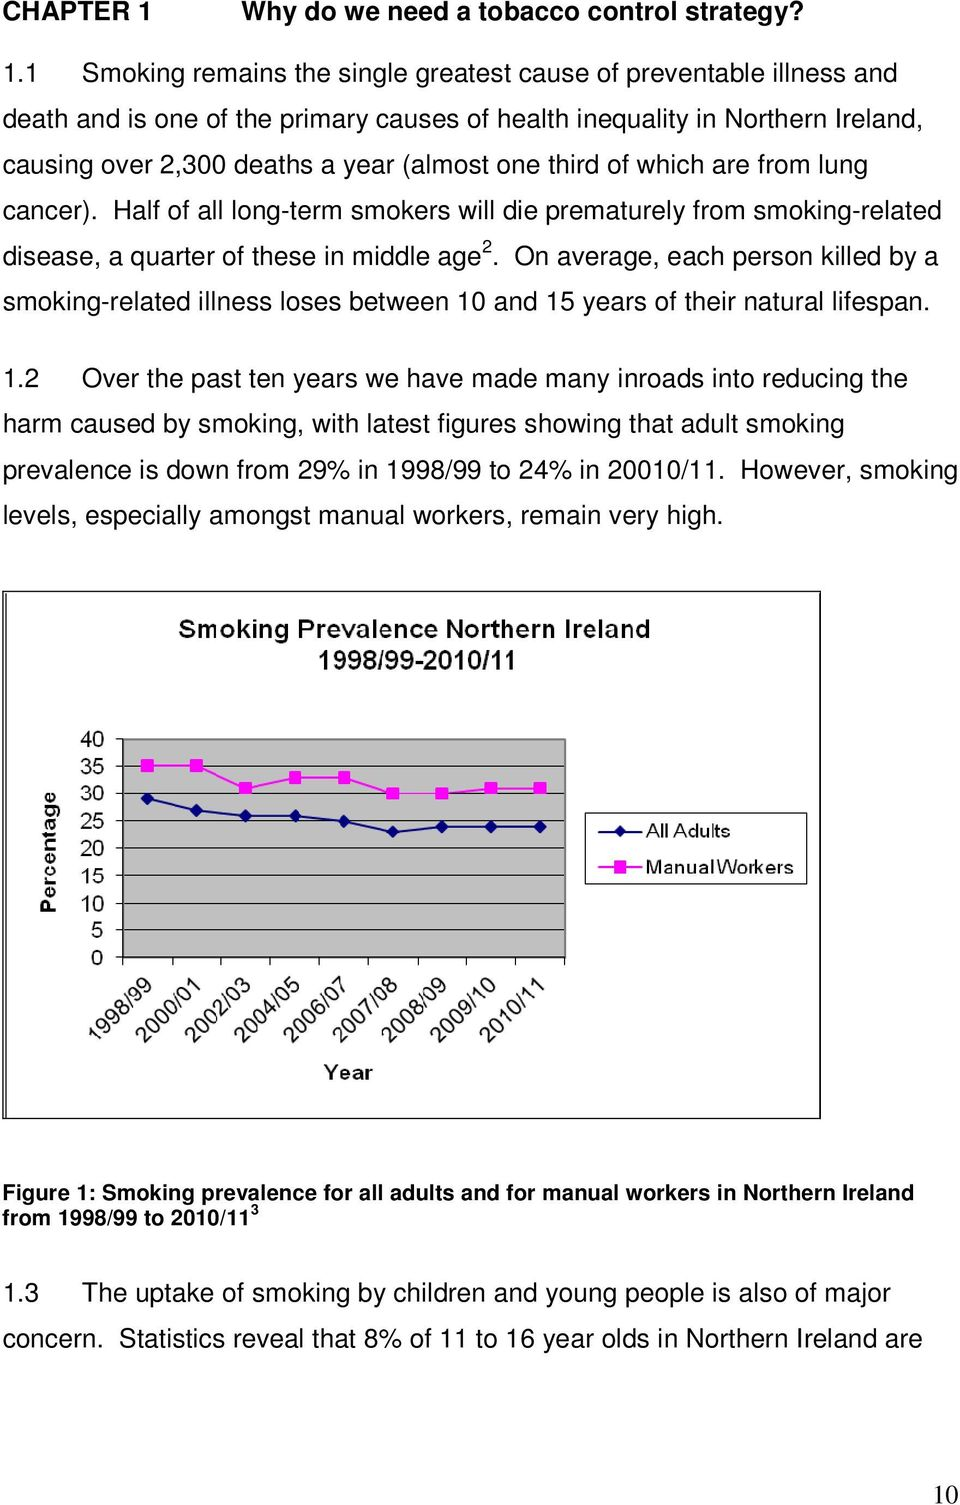 1 Smoking remains the single greatest cause of preventable illness and death and is one of the primary causes of health inequality in Northern Ireland, causing over 2,300 deaths a year (almost one